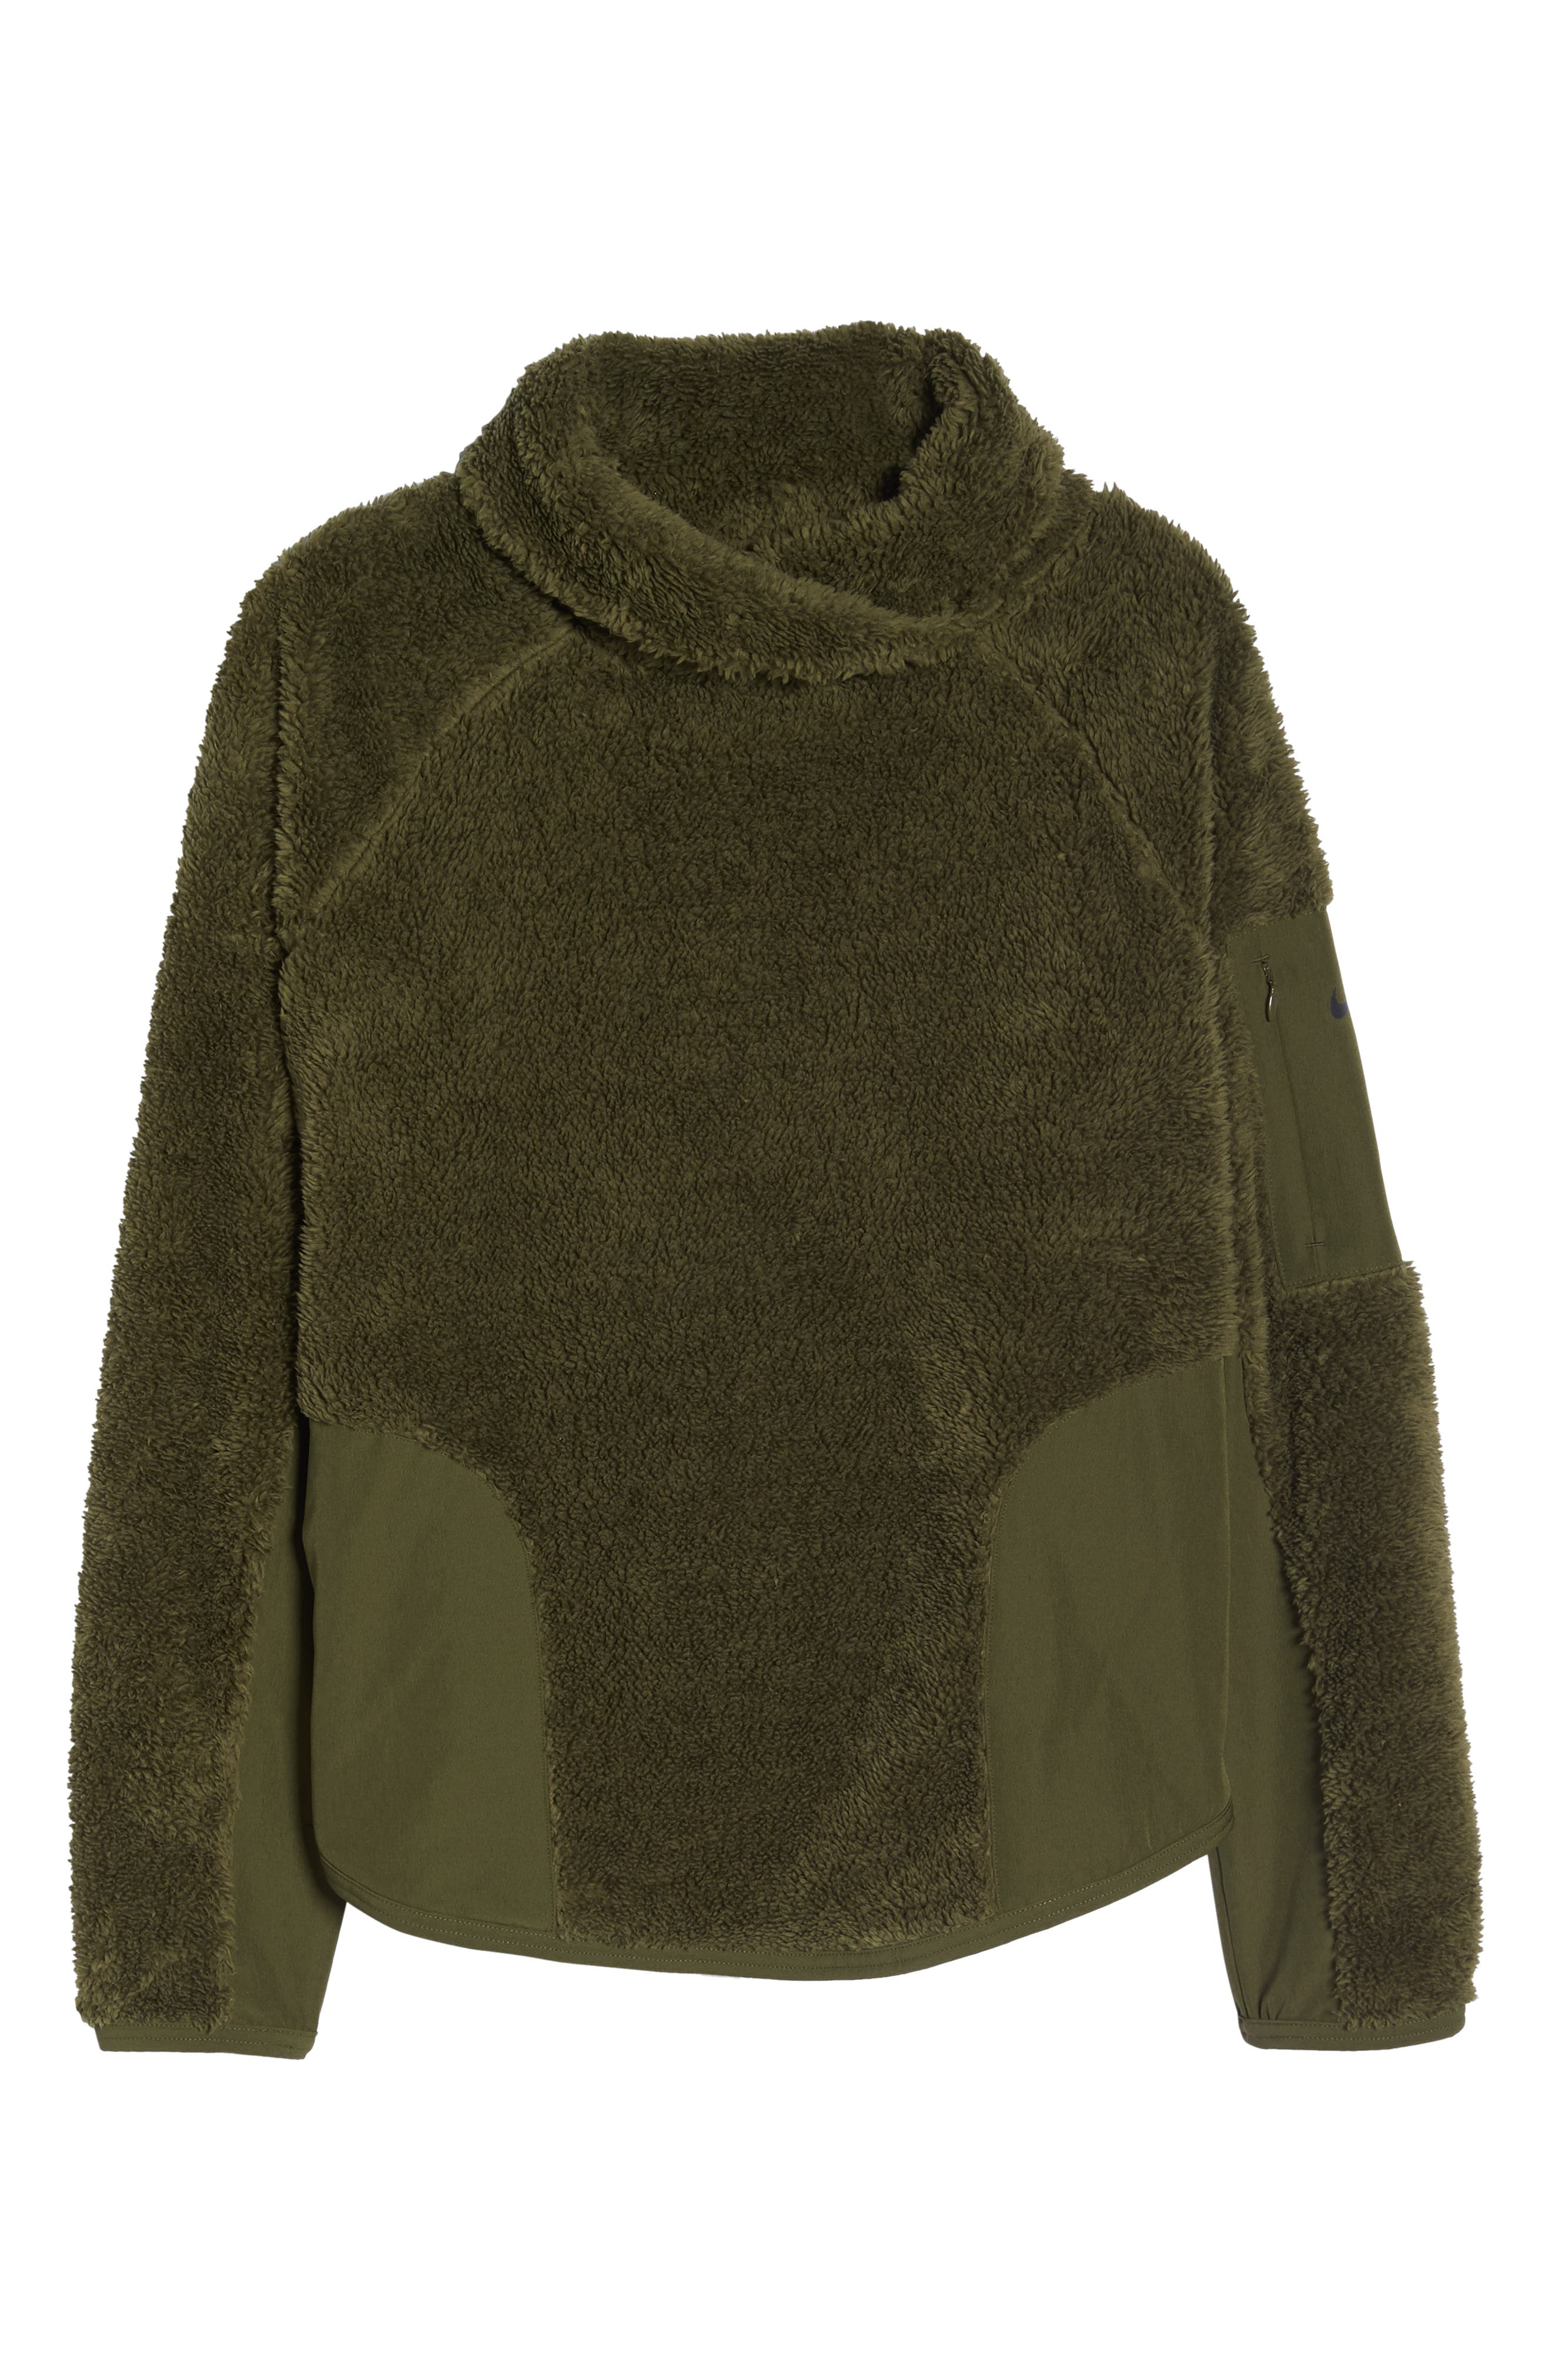 Fleece Mock Neck Top,                             Alternate thumbnail 7, color,                             OLIVE CANVAS/ BLACK